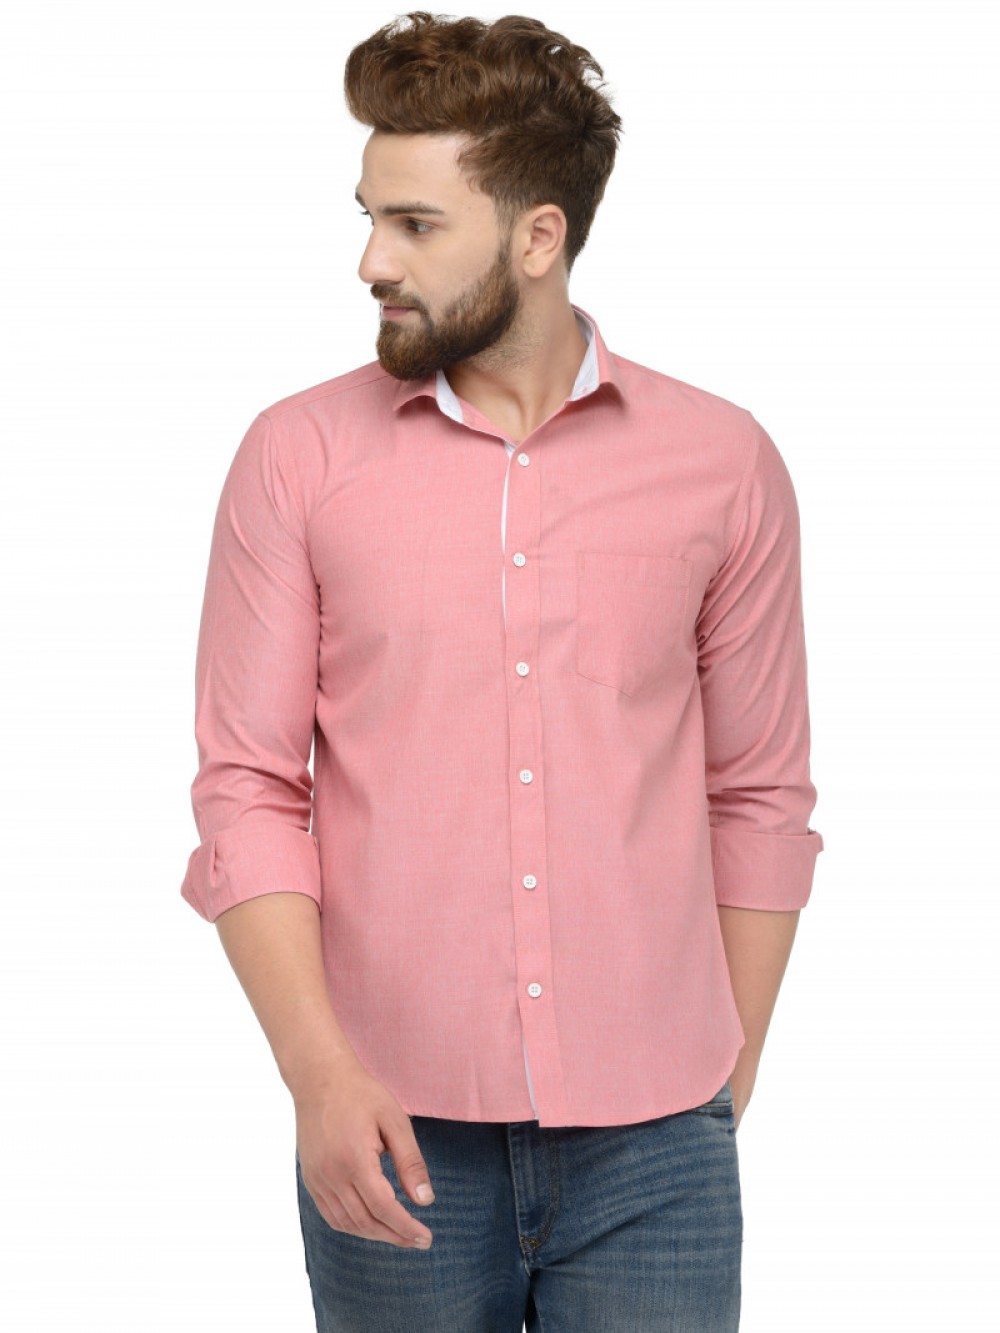 Pink Peach Color Shirt